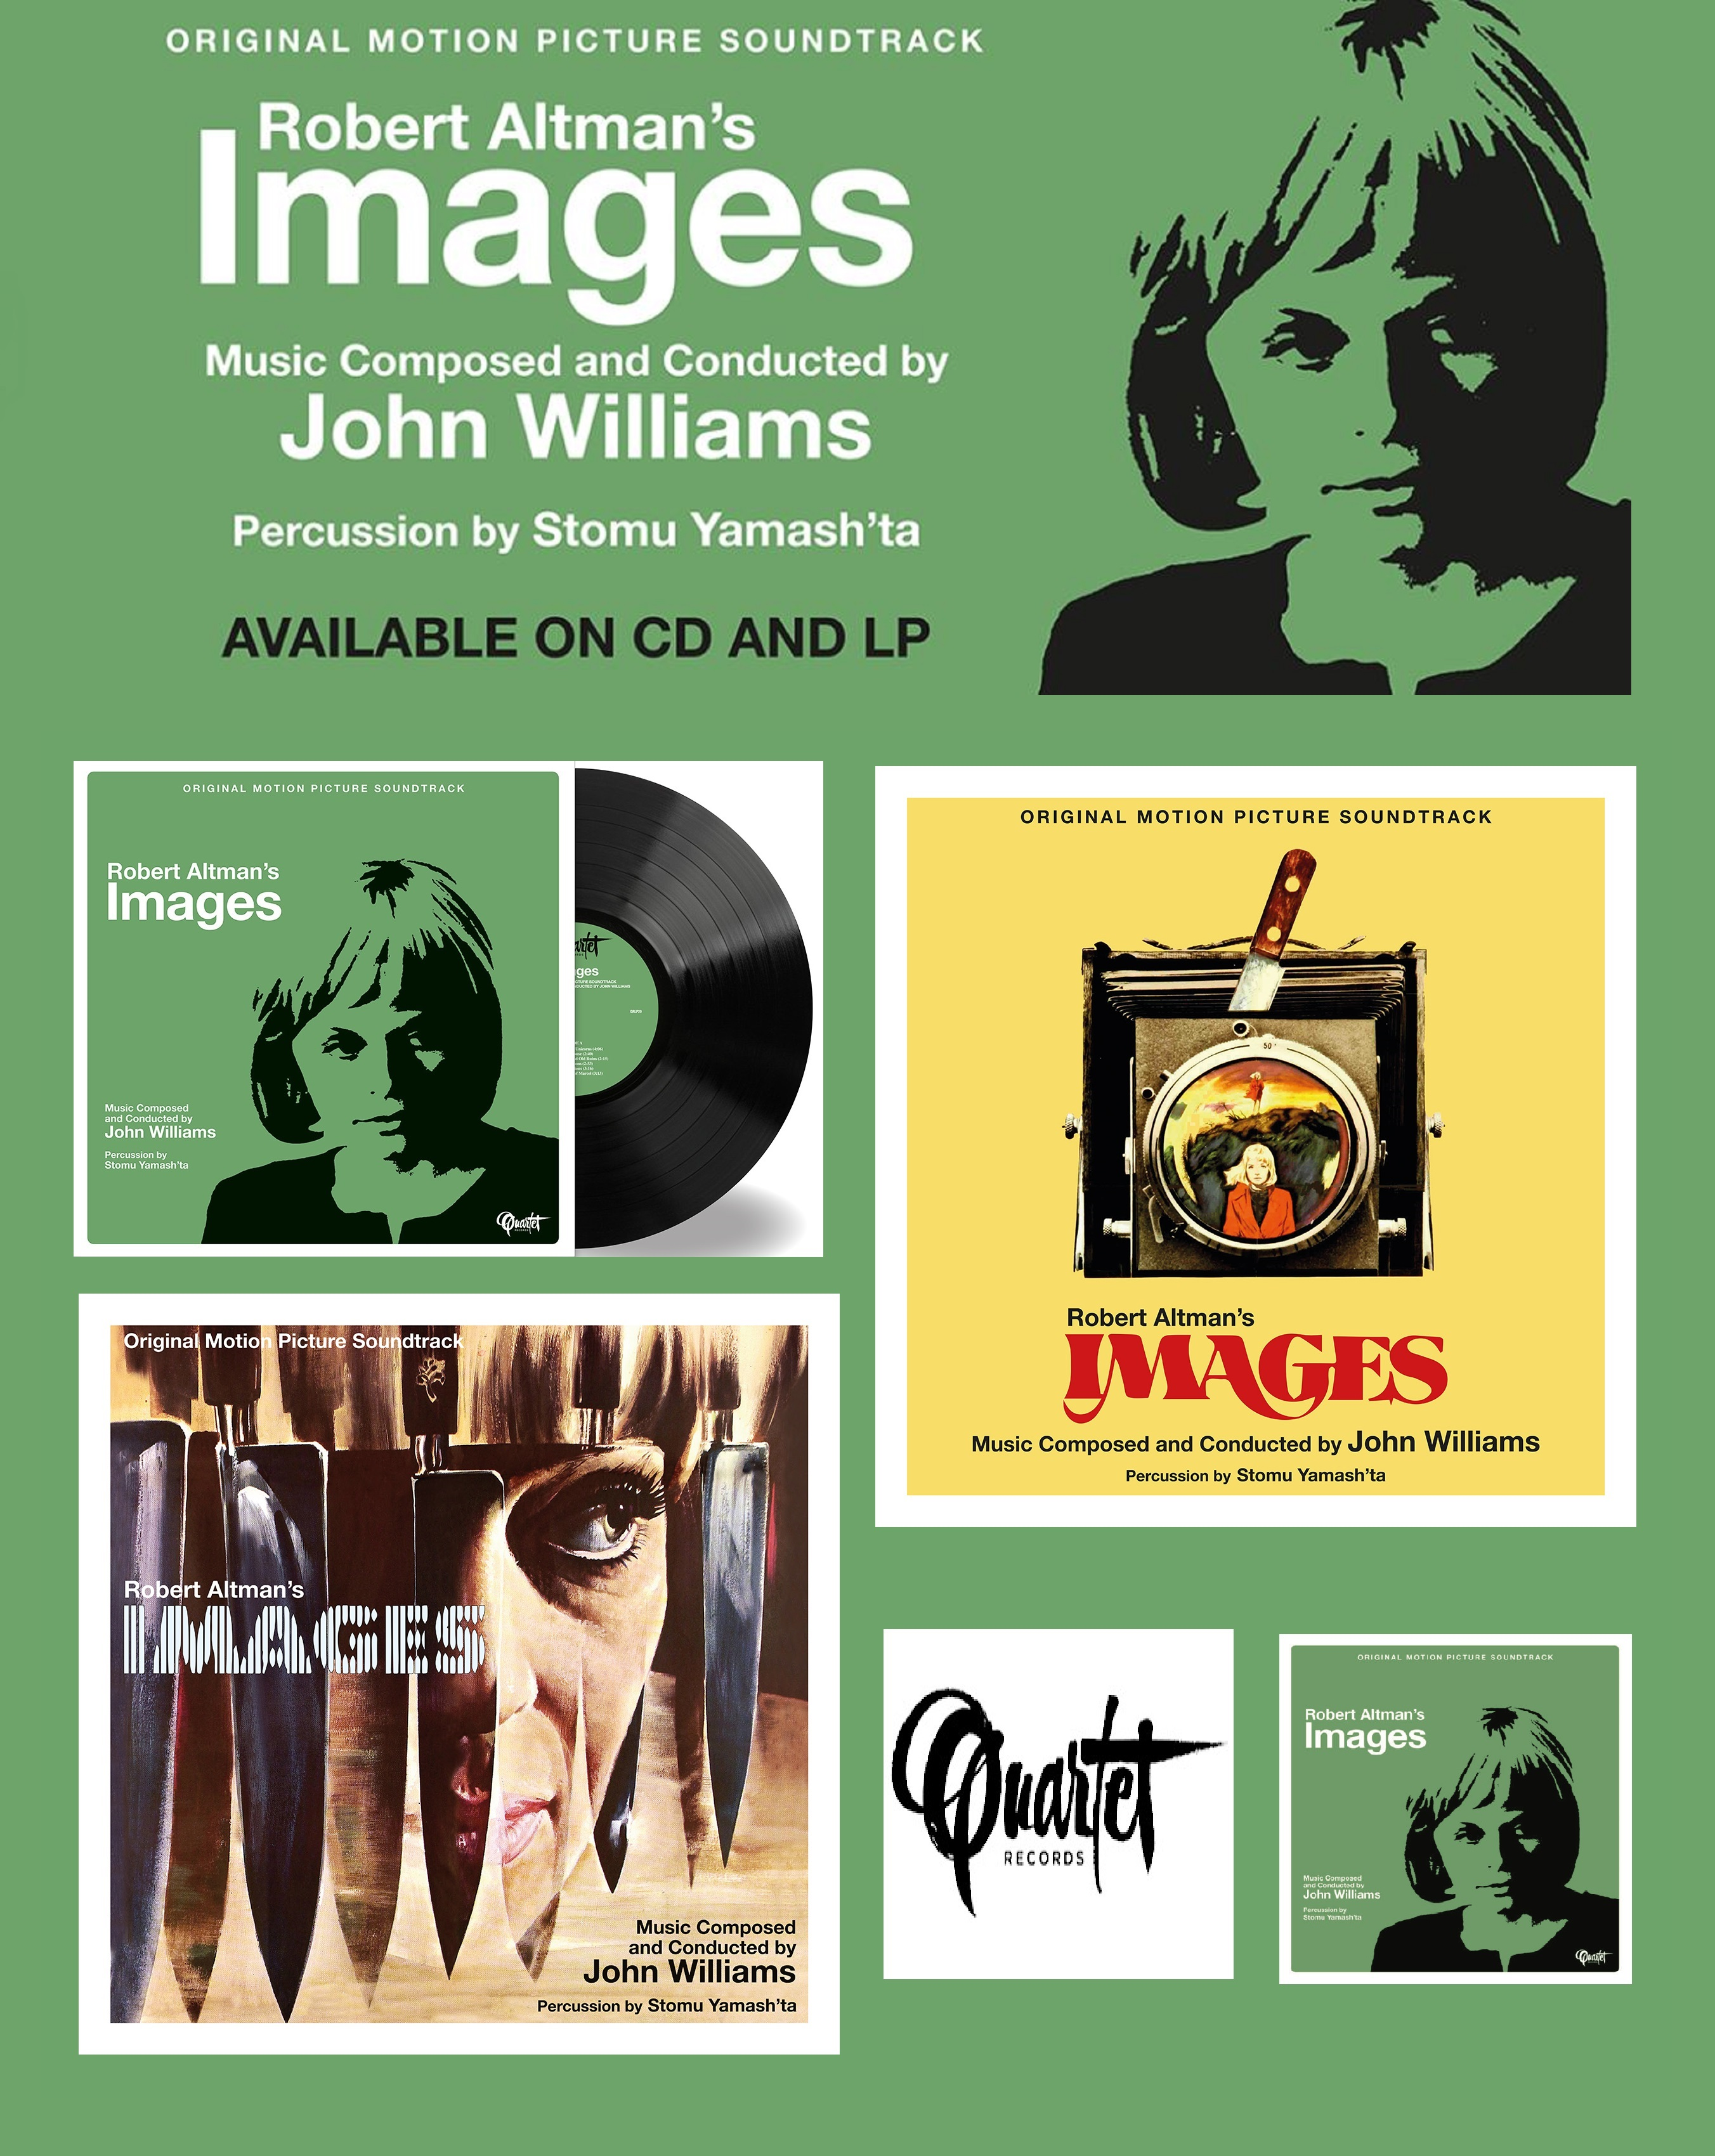 Images (Vinyl and Cd)